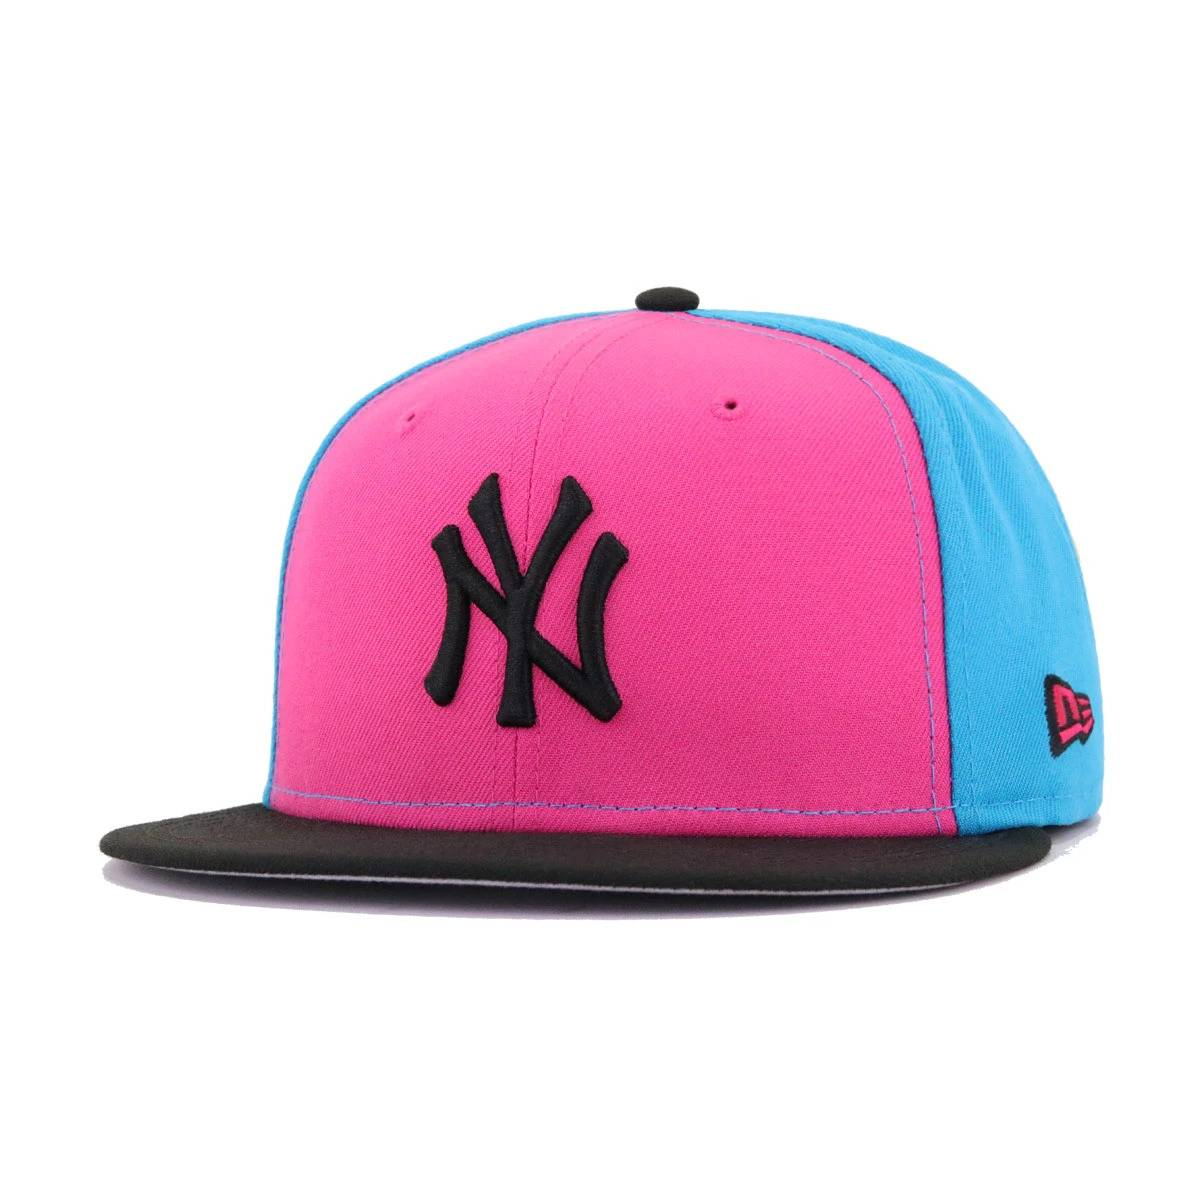 New York Yankees Highlighter New Era 9Fifty Snapback